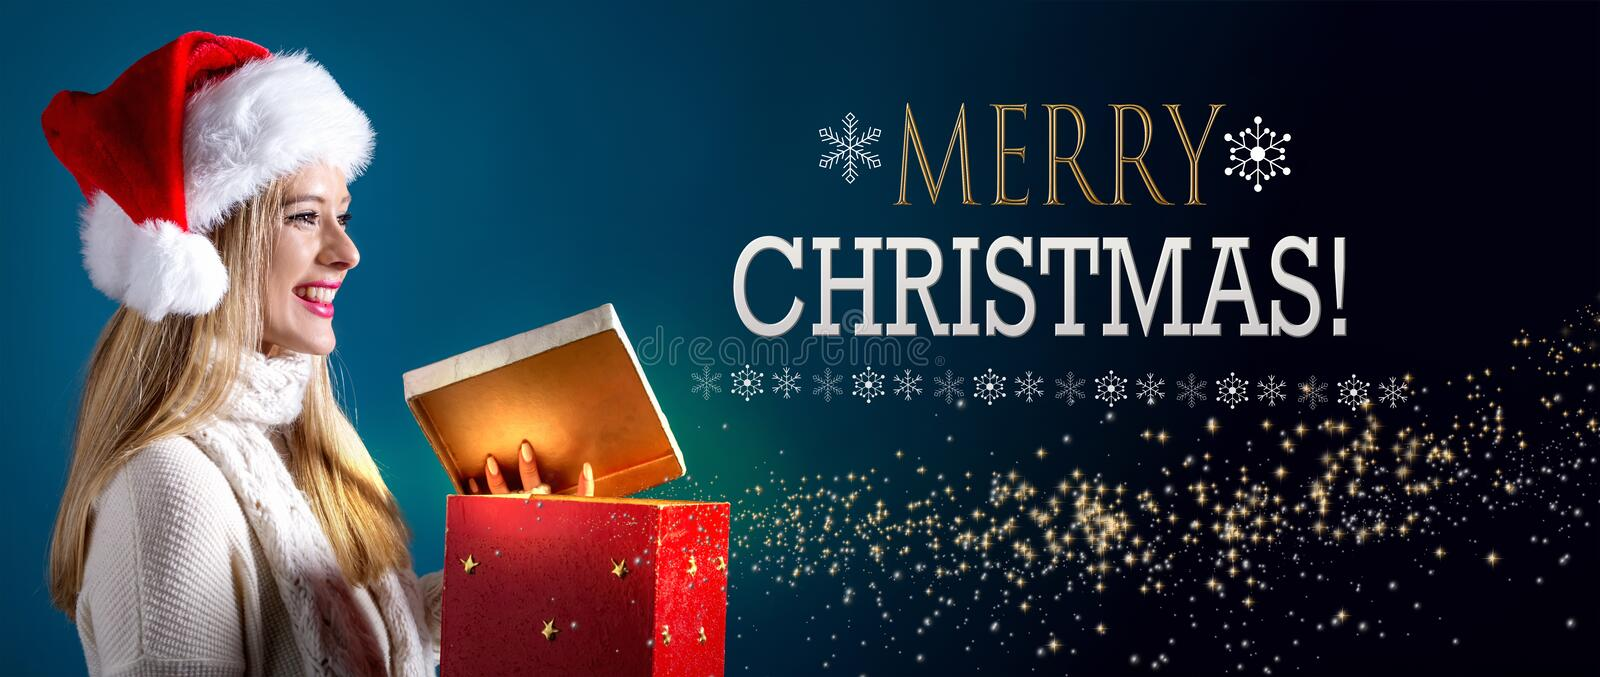 Merry Christmas message with woman opening a gift box stock photo